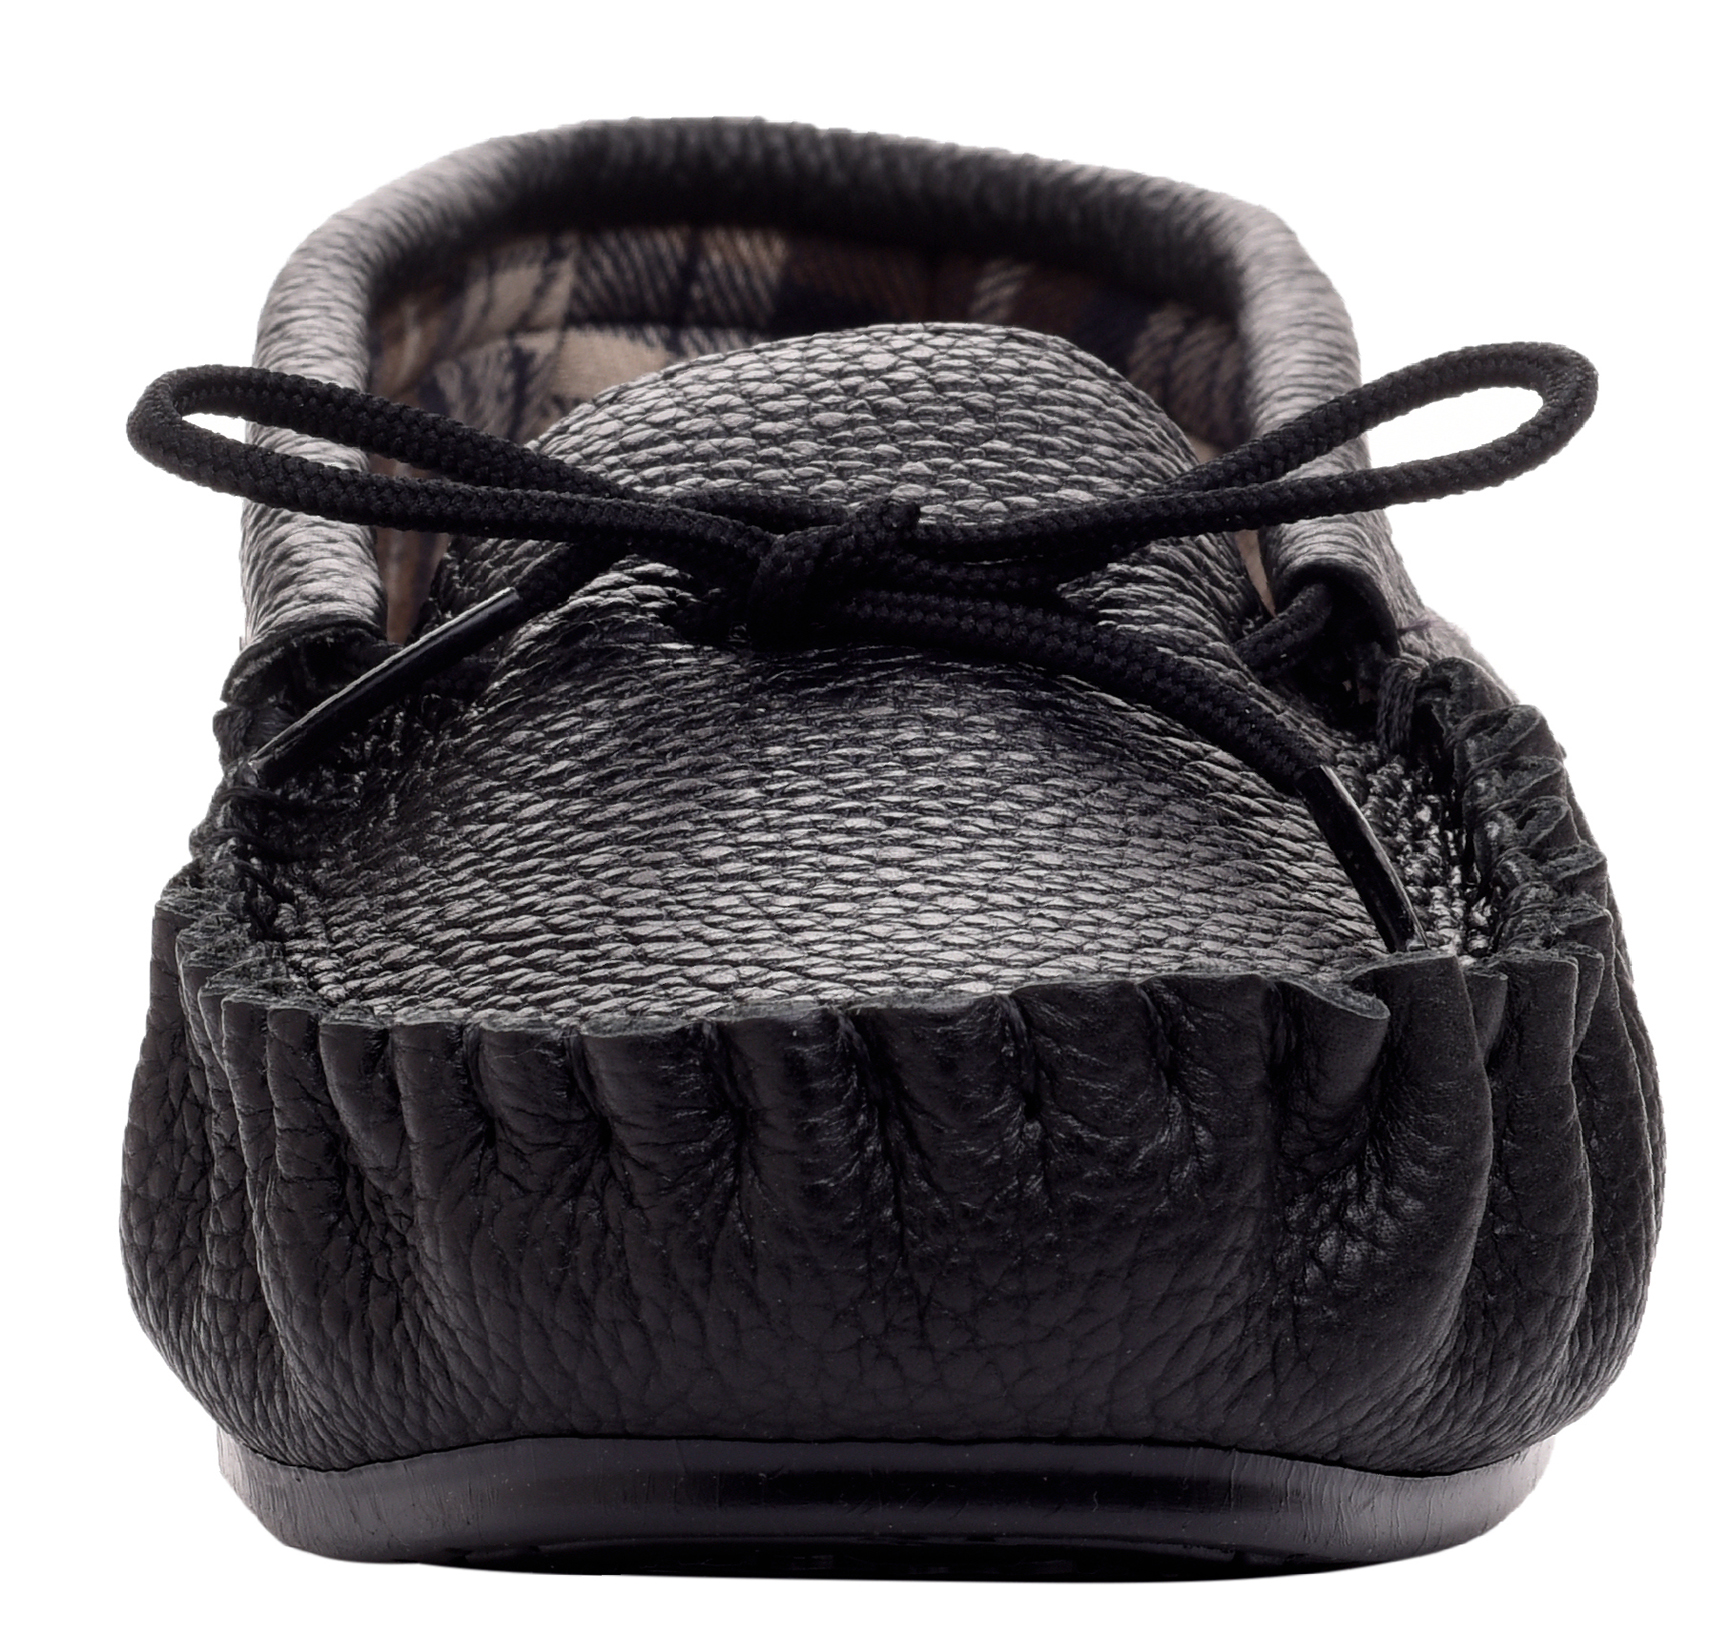 Leather-Moccasin-Slippers-UK-Made-for-Men-and-Ladies-Cotton-Lining-by-Lambland thumbnail 6